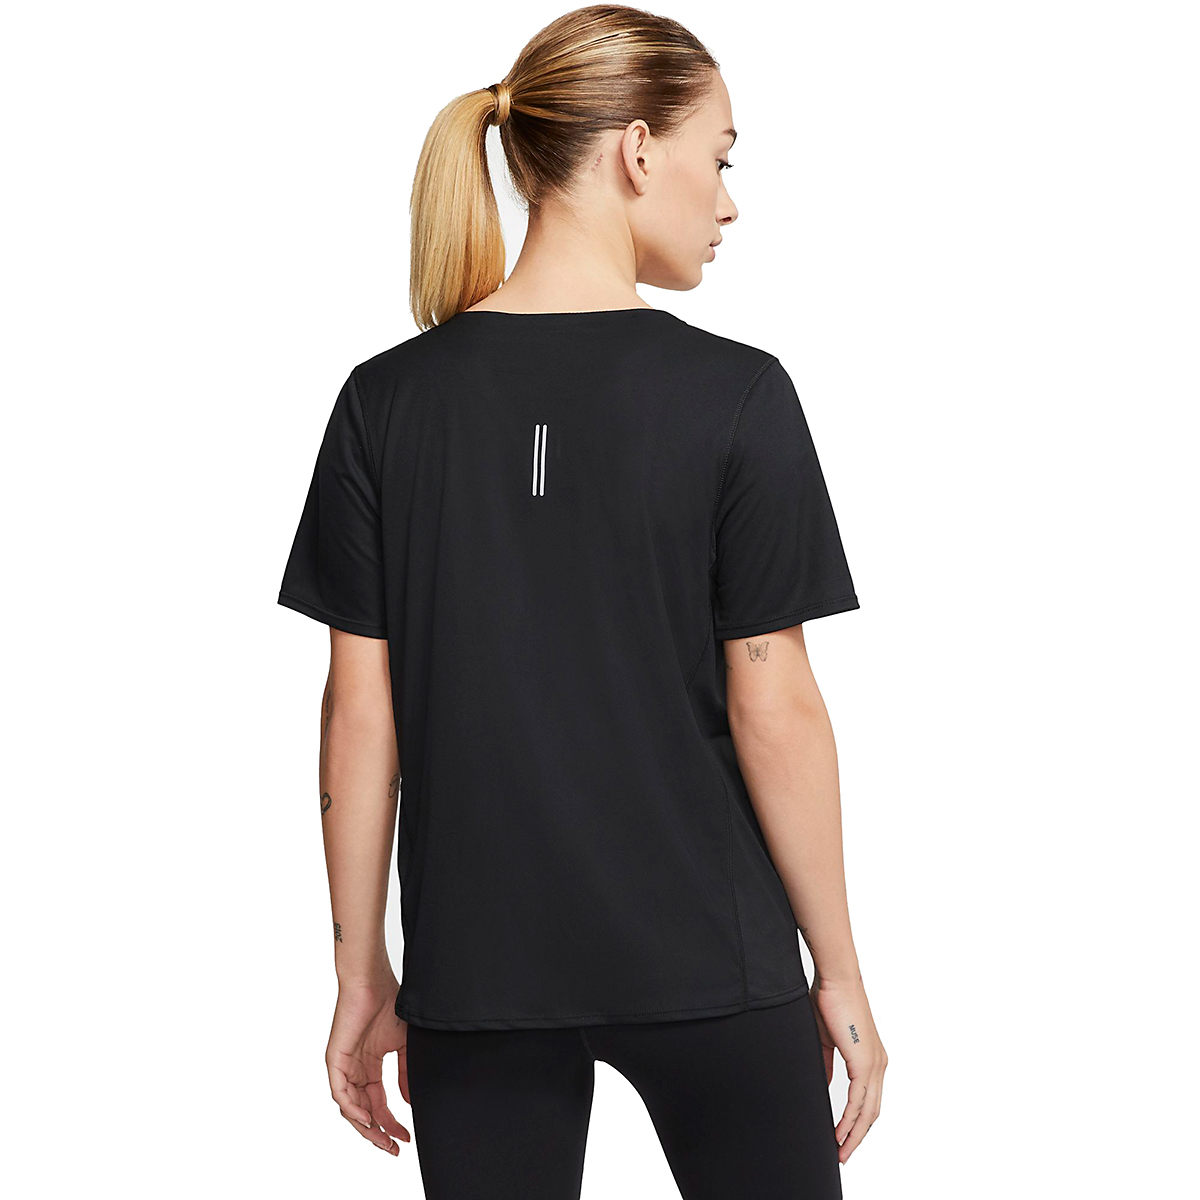 Women's Nike City Sleek Short Sleeve Top - Color: Black/Reflective Silver - Size: XS, Black/Reflective Silver, large, image 2